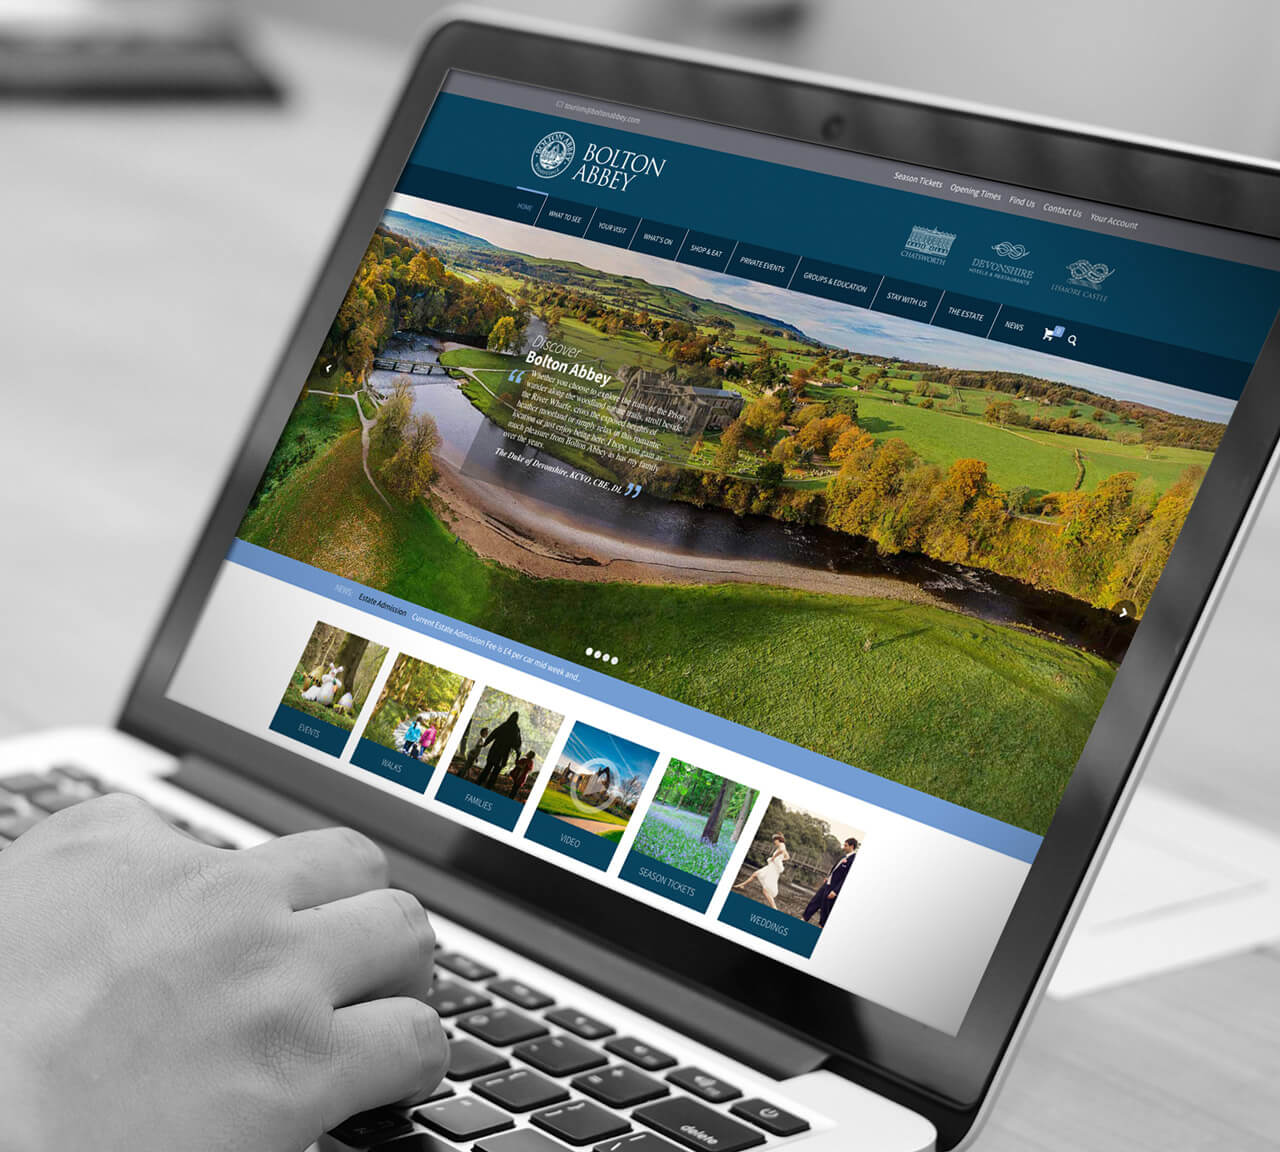 tig bolton abbey website design harrogate